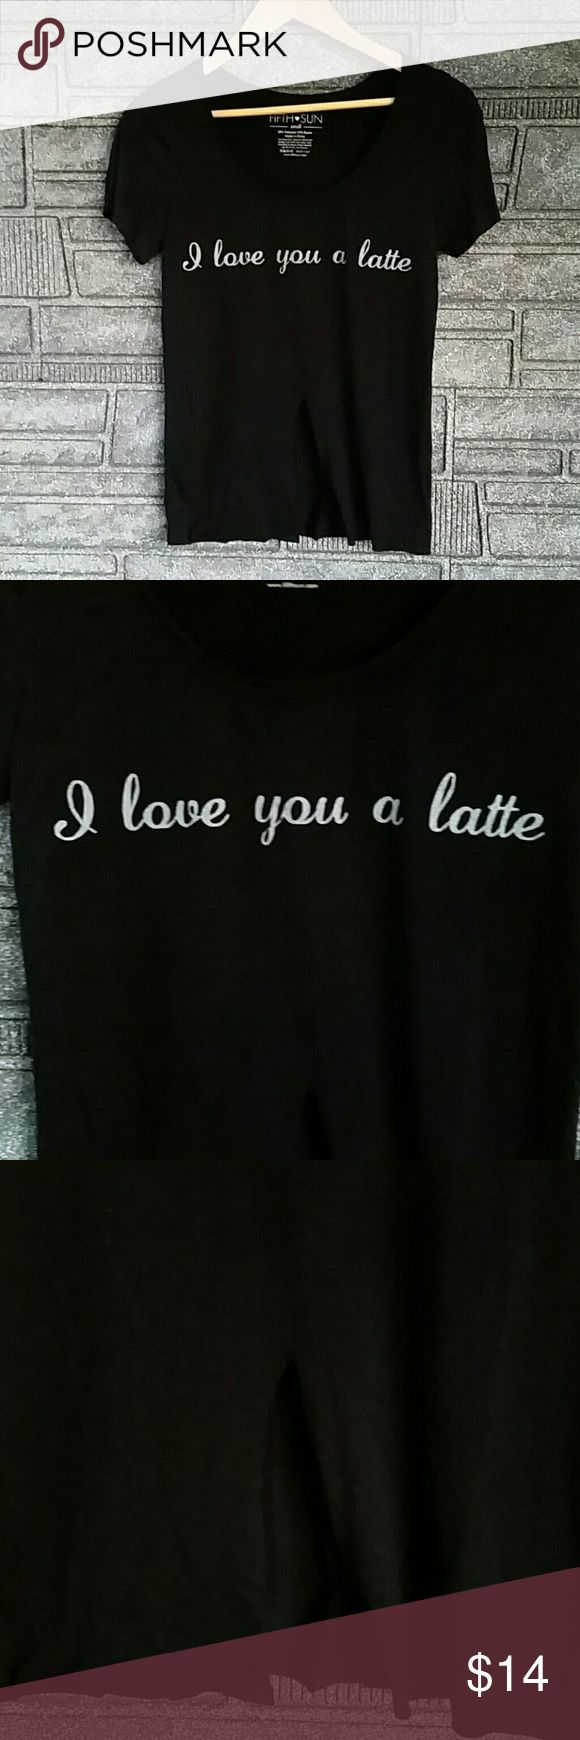 """I love you a latte statement t size small Black t shirt features short sleeves and slit up the front middle. Wording is """"I love you a latte"""" in cursive writing.  50% polyester,  50% rayon. Measures 25 inches top to bottom, 15 inches armpit to armpit. Slit goes 8 inches from top to bottom. Fifth Sun Tops Tees - Short Sleeve"""